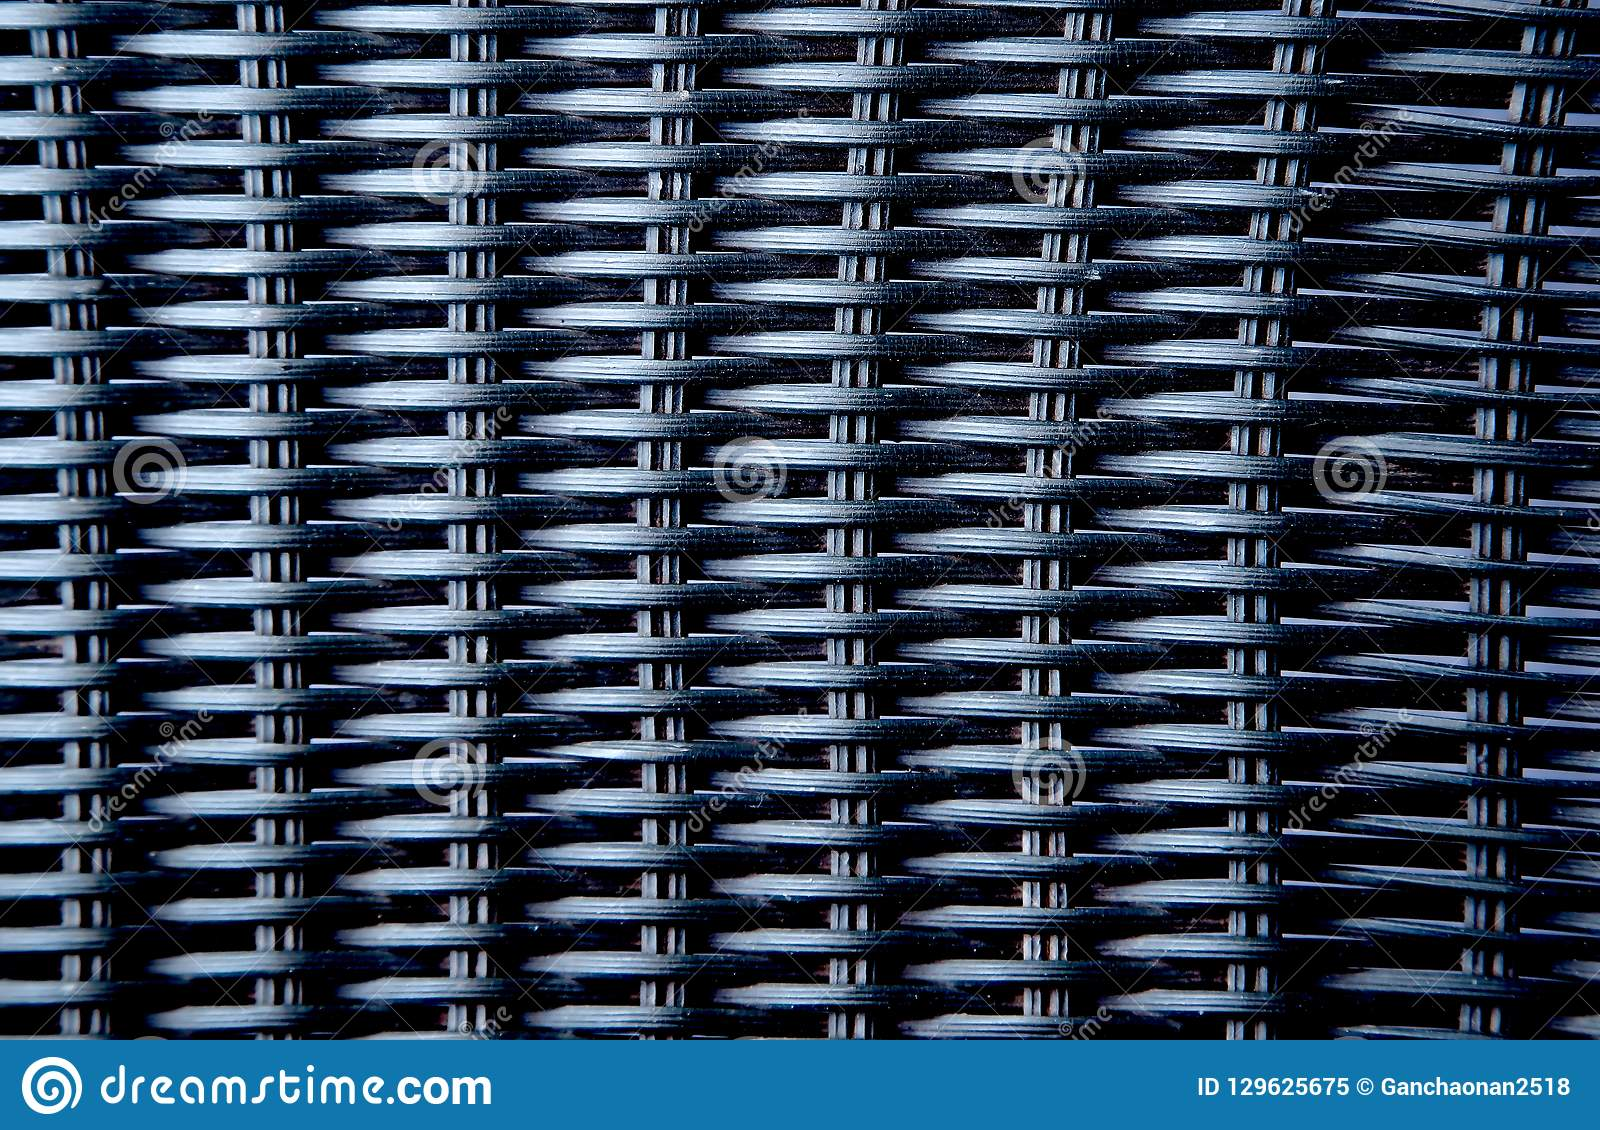 7ba4192f6f922 Dark color artificial rattan pattern. Background of basket structure  close-up.